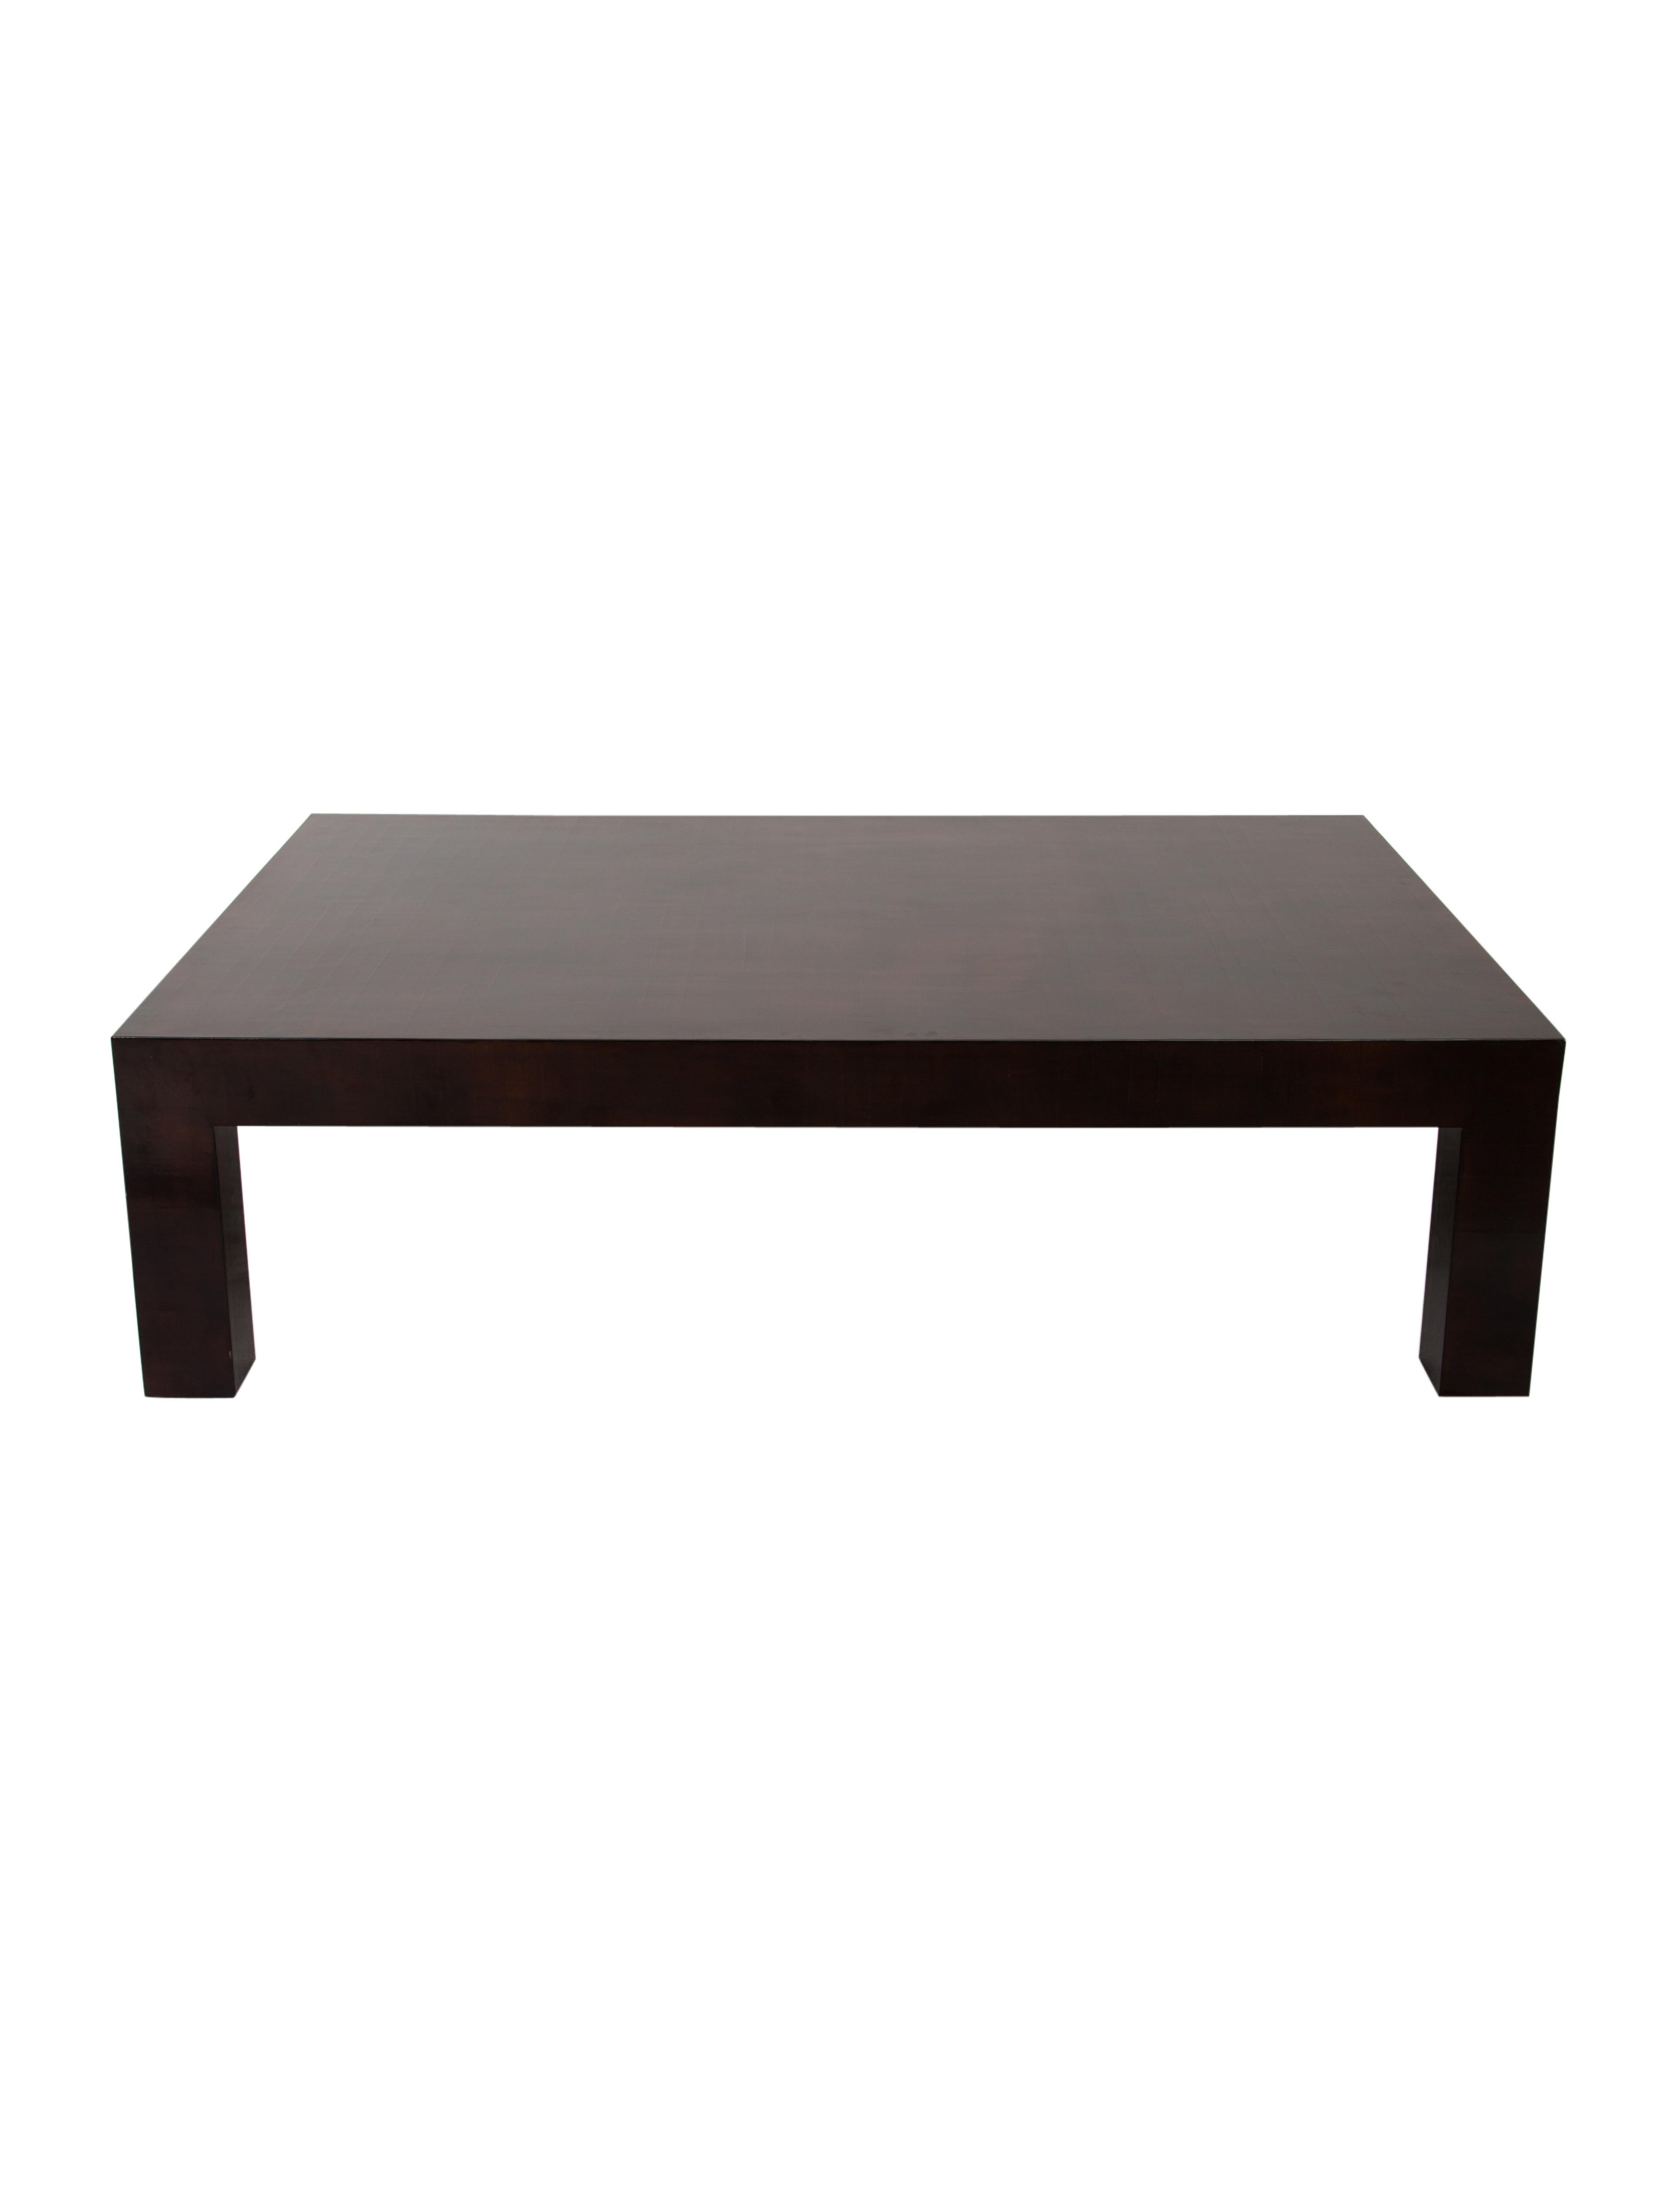 Lacquered Coffee Table Furniture Coffe20022 The Realreal